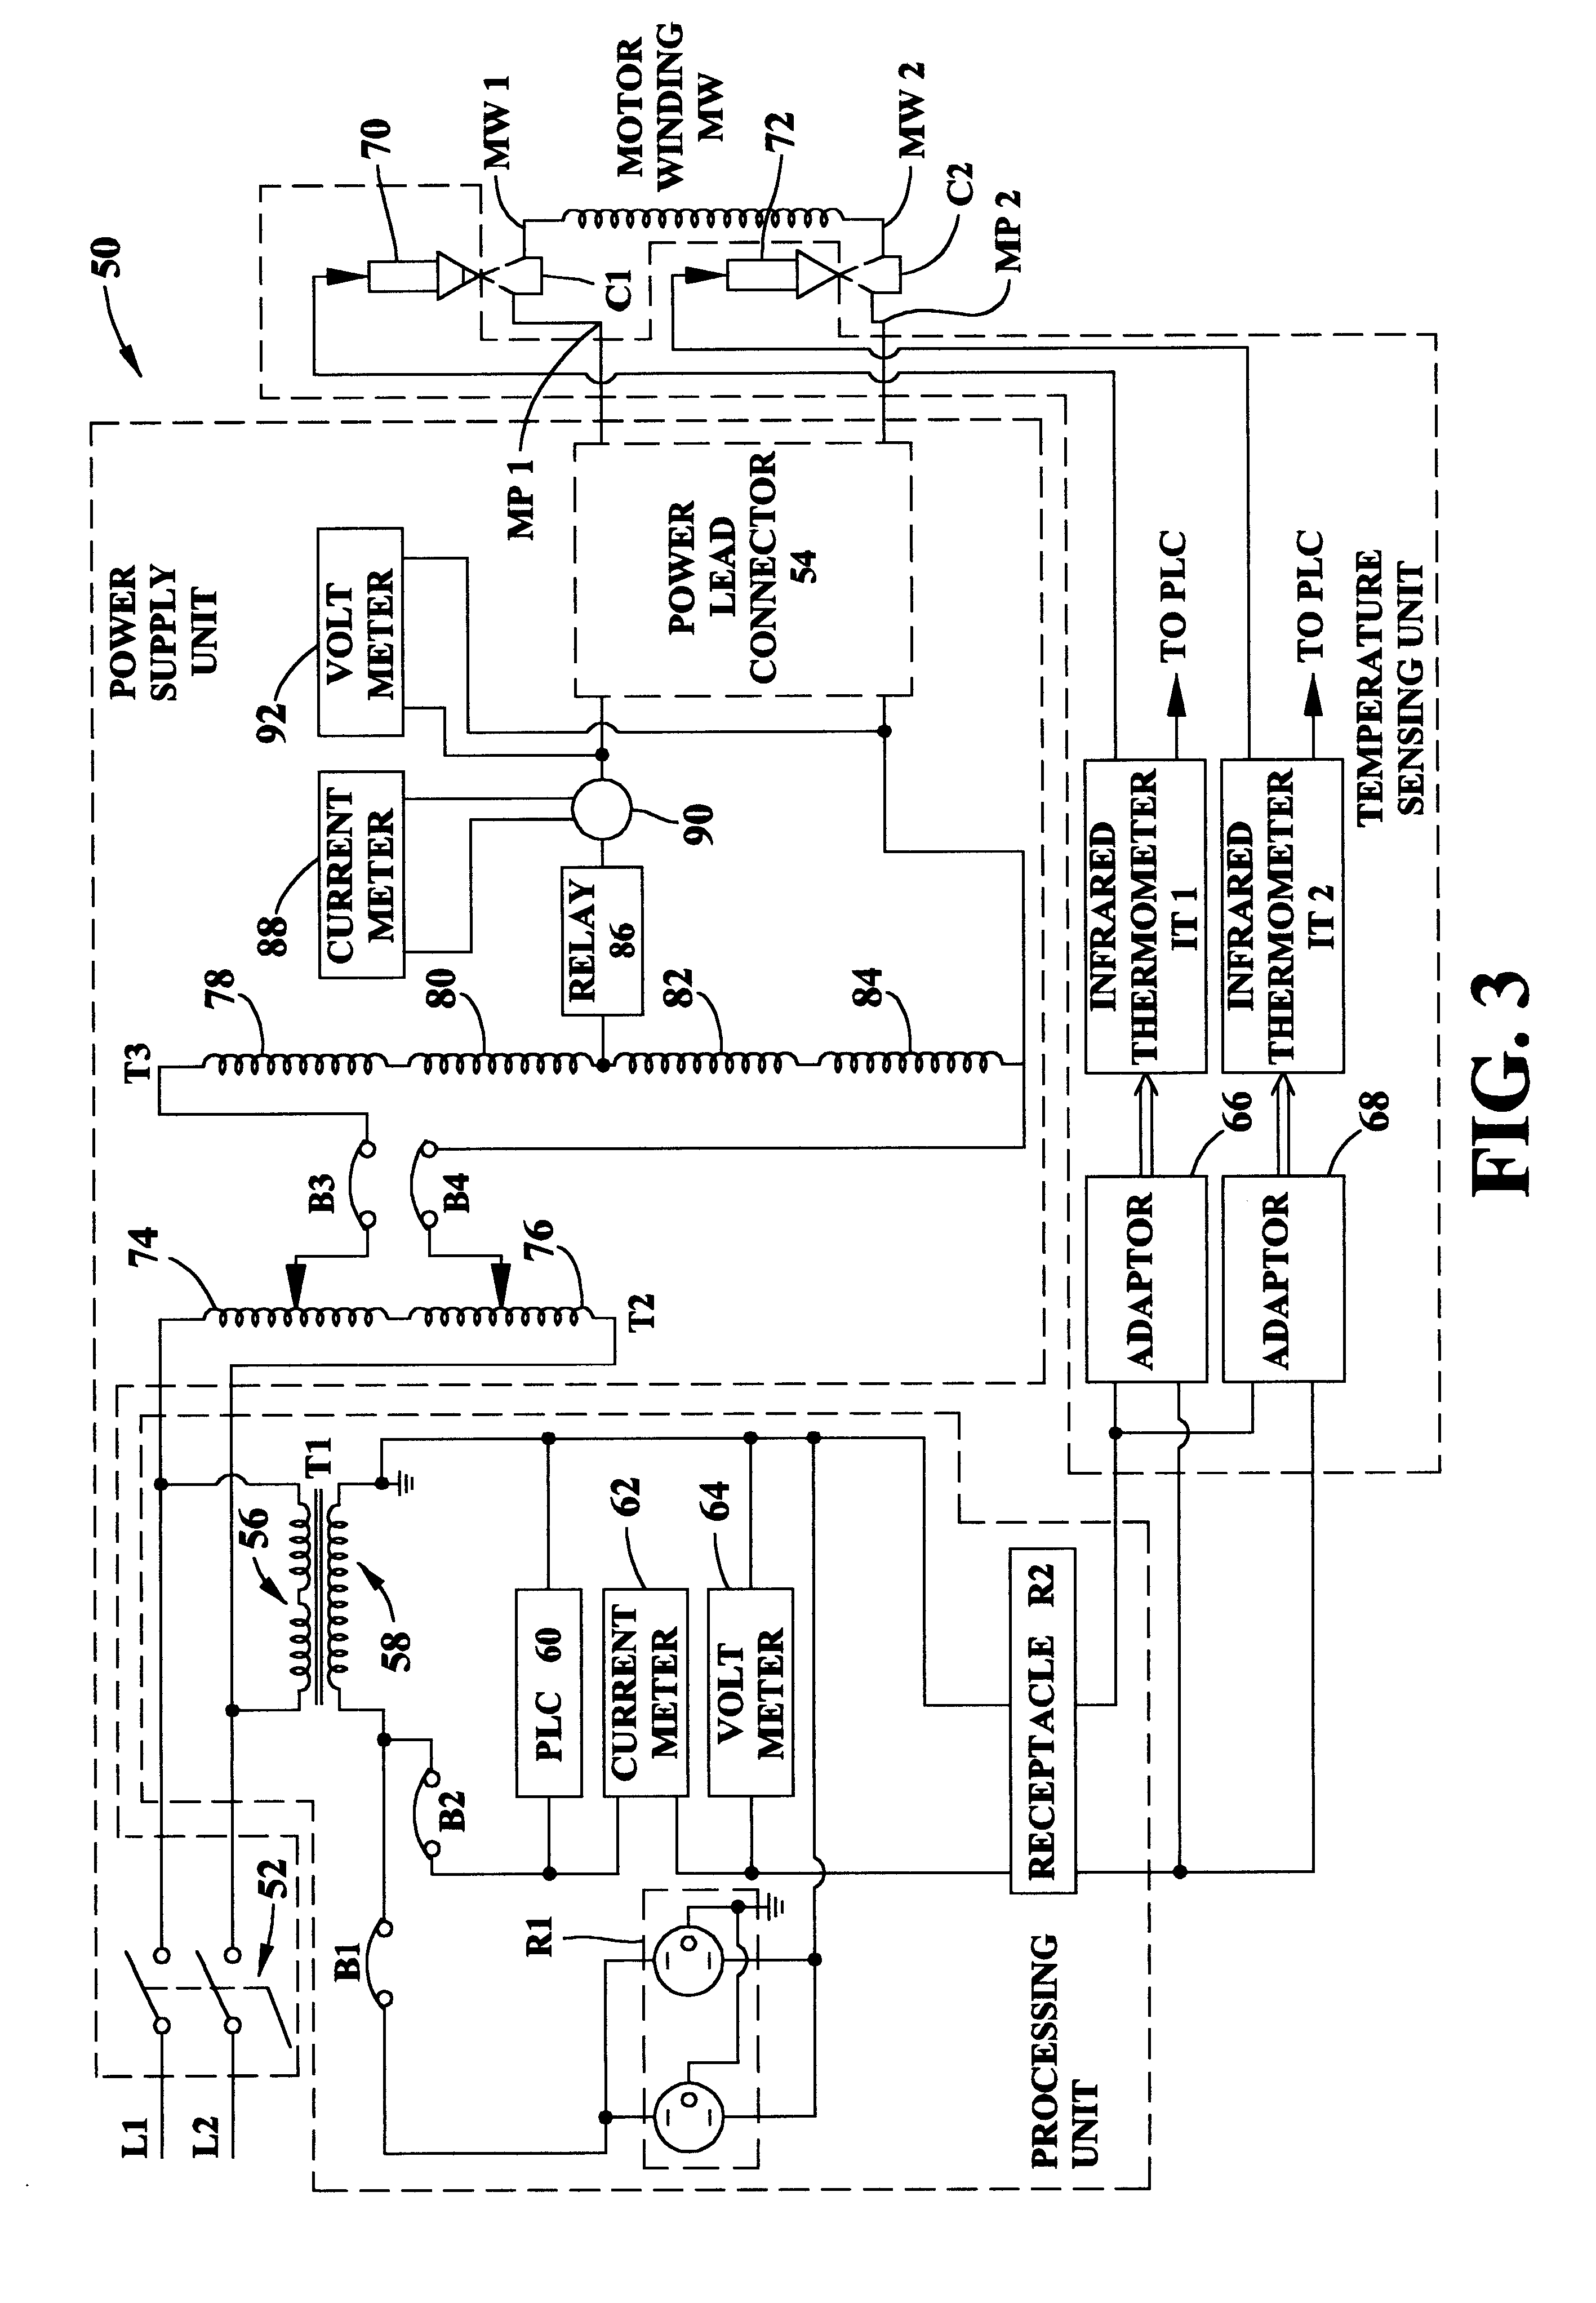 As440 Avr Wiring Diagram 24 Images Function Generator Schematic In Addition Circuit At Cita 150 Kw General Motors Lp Natural Gas Patent Us6343259 Methods And Apparatus For Electrical Connection